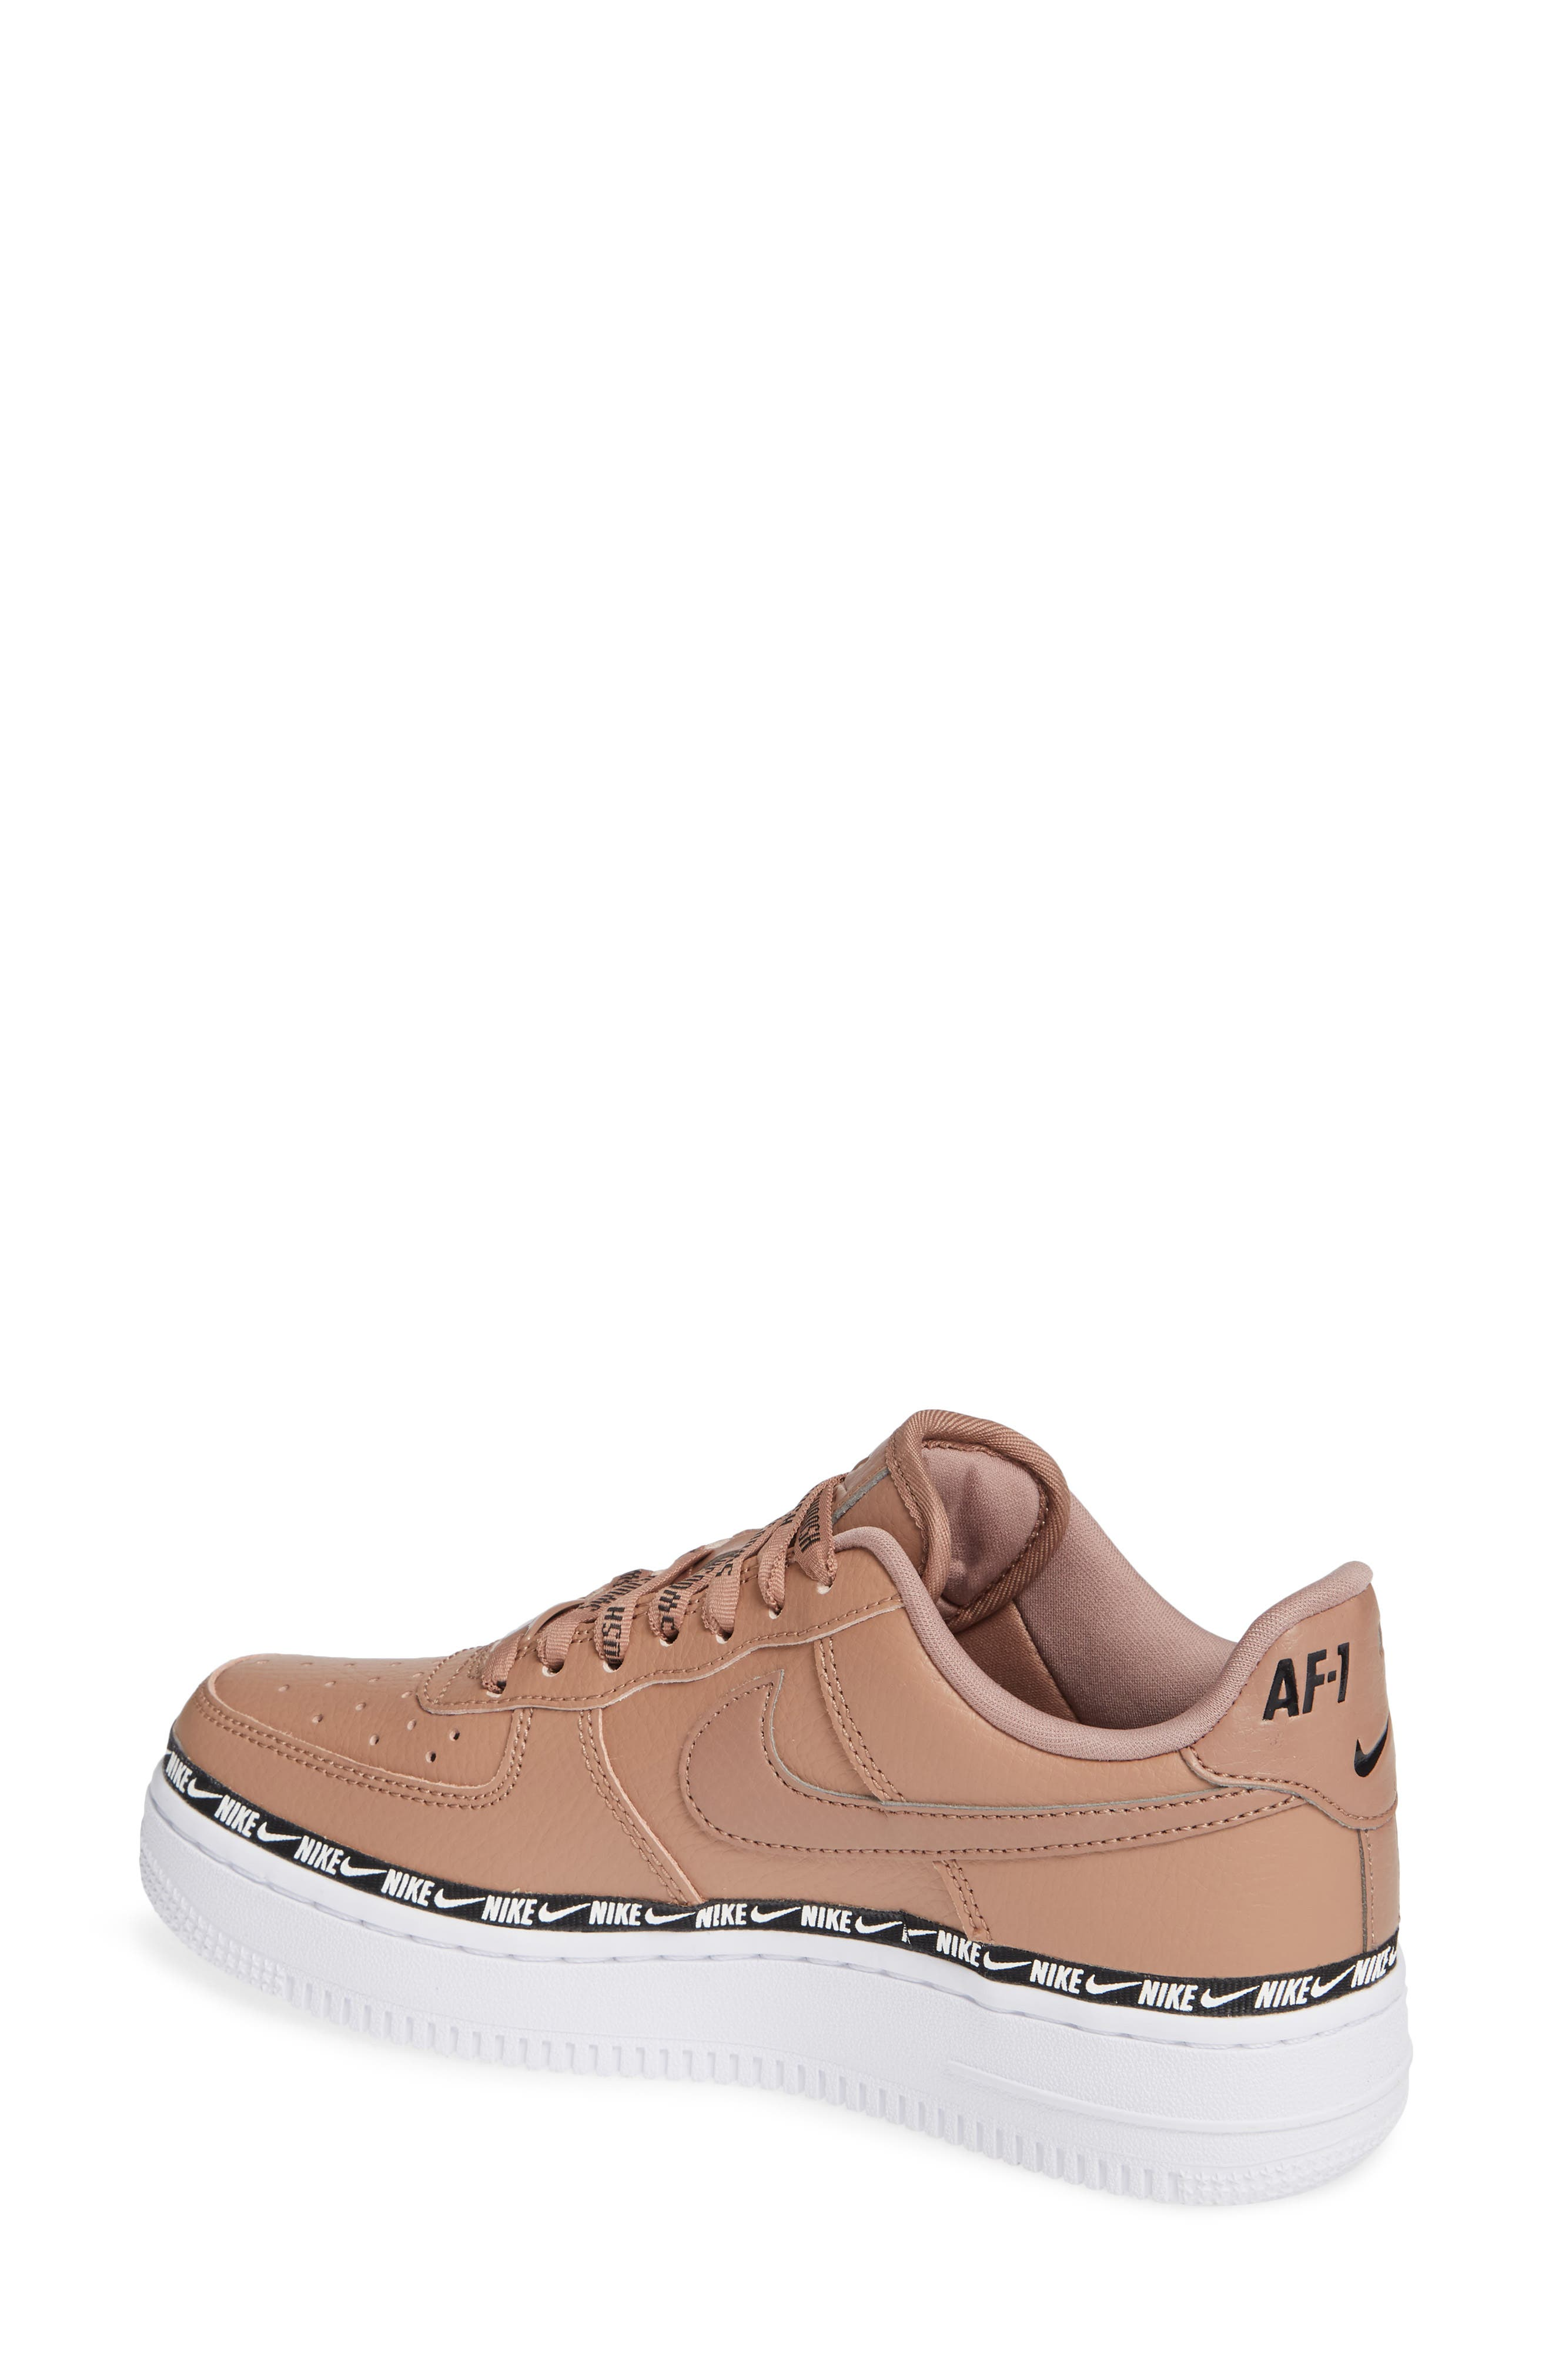 new styles 0c932 3bd13 ... greece womens nike new arrivals clothing shoes beauty nordstrom fcb5e  bdd4b